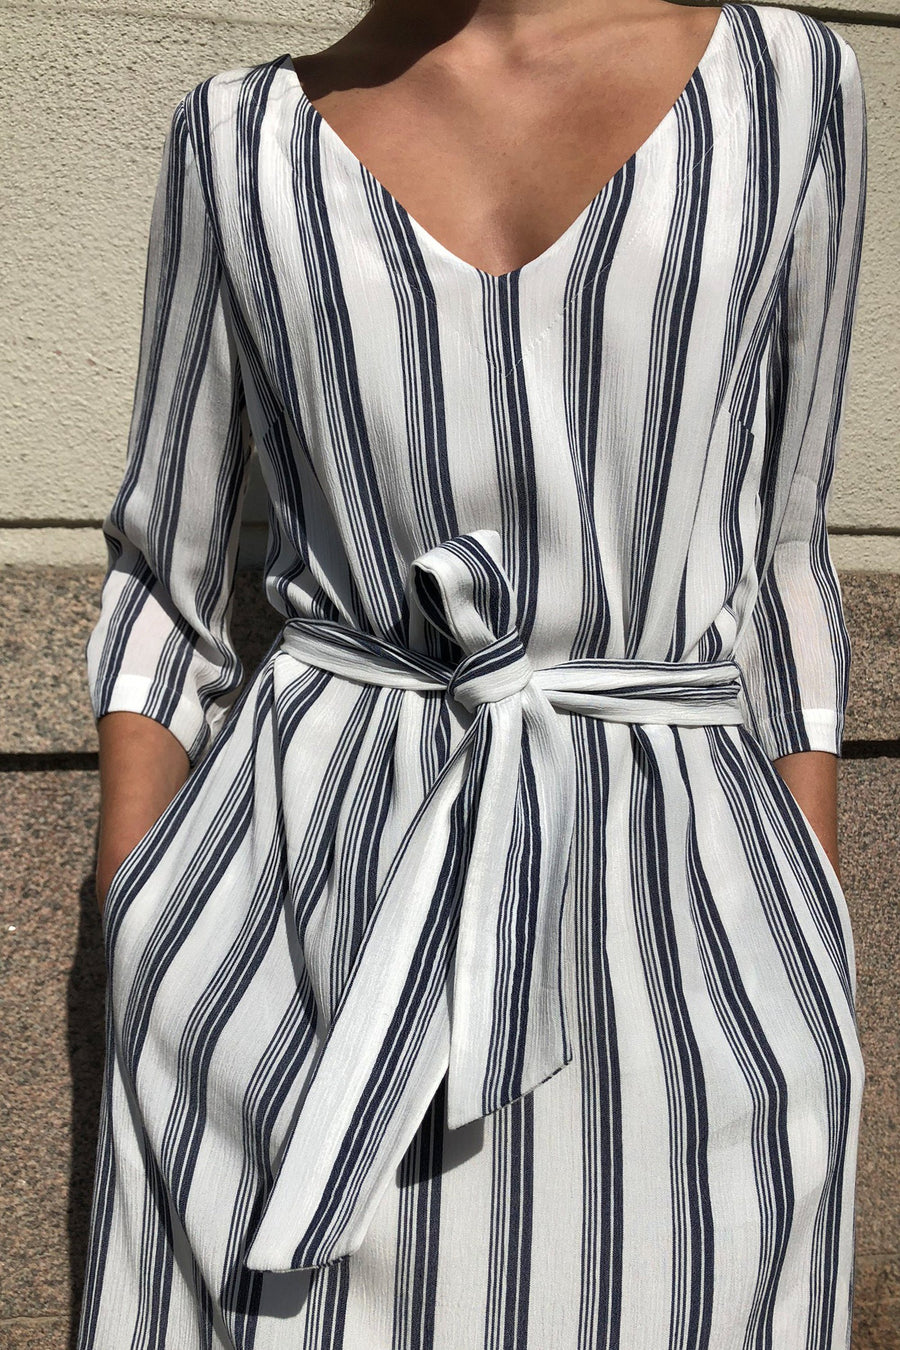 SENNA DRESS - STRIPED Dress Stylein